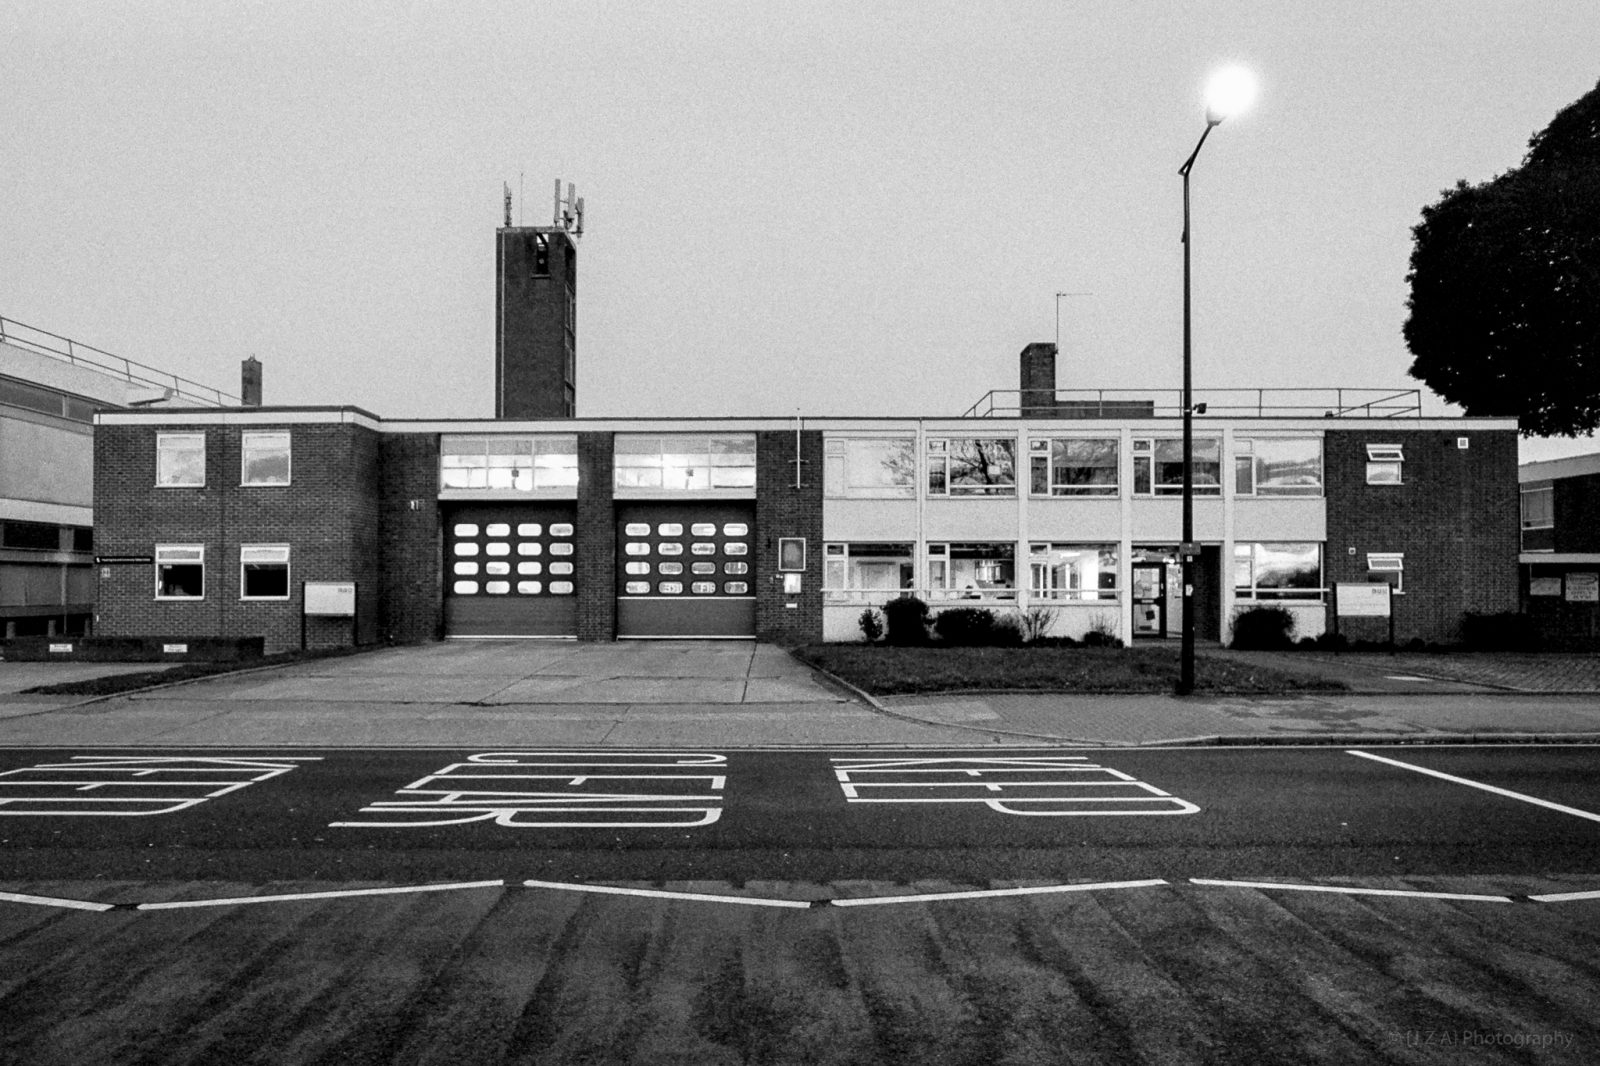 Hornchurch Fire Station